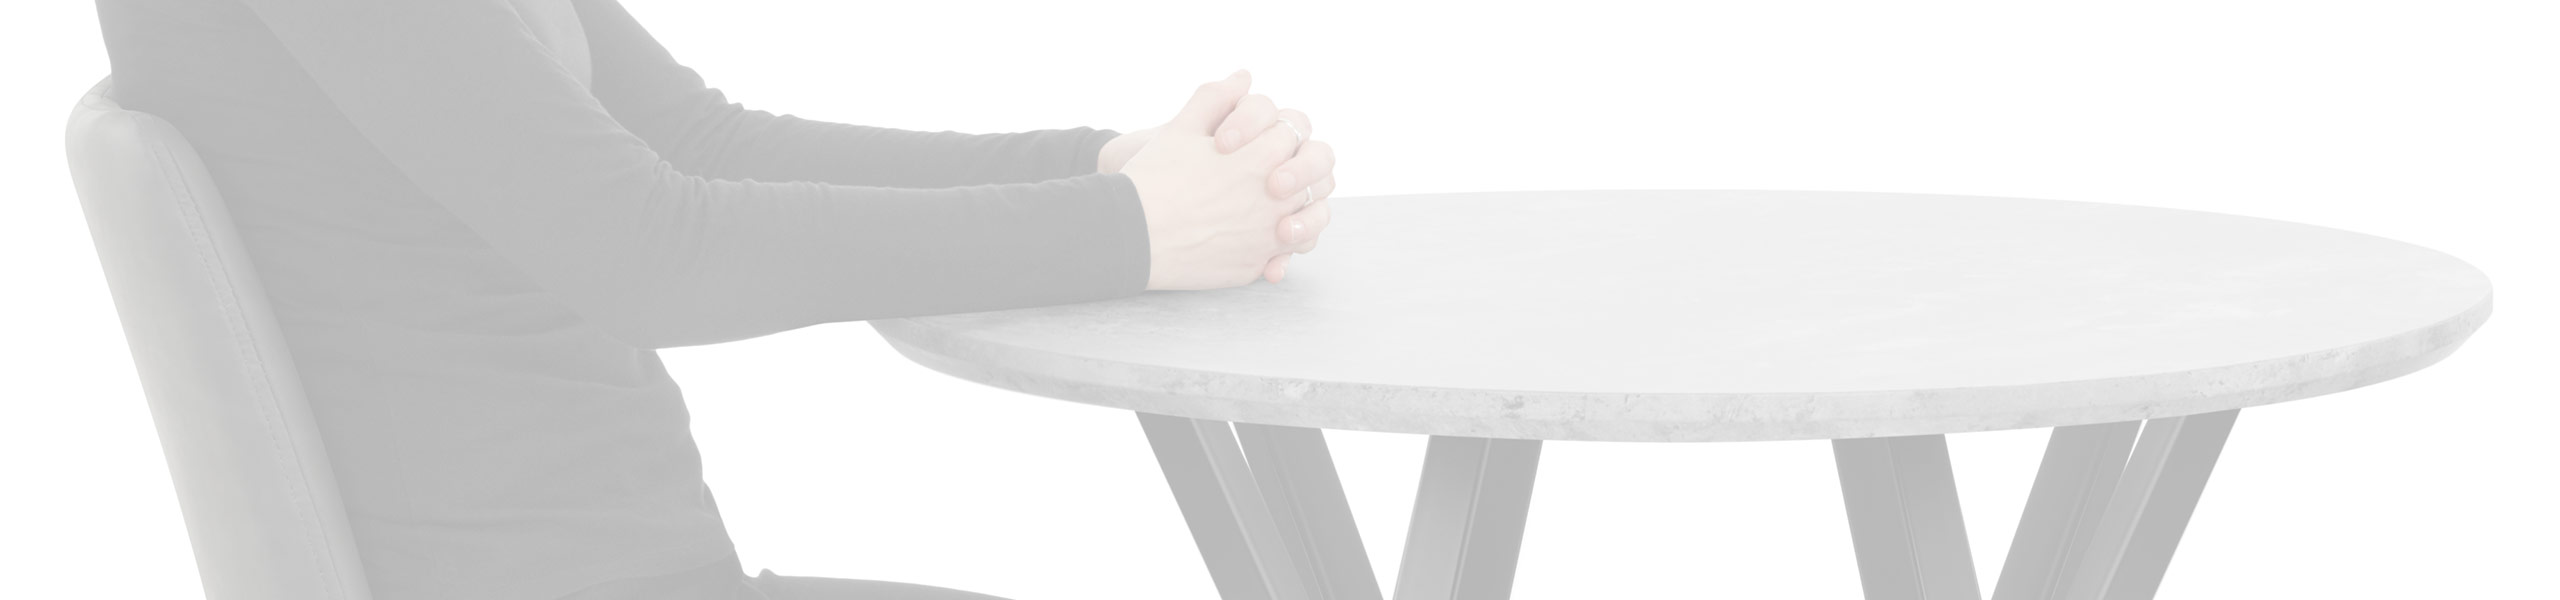 Wessex Dining Set Concrete & Charcoal Review Banner